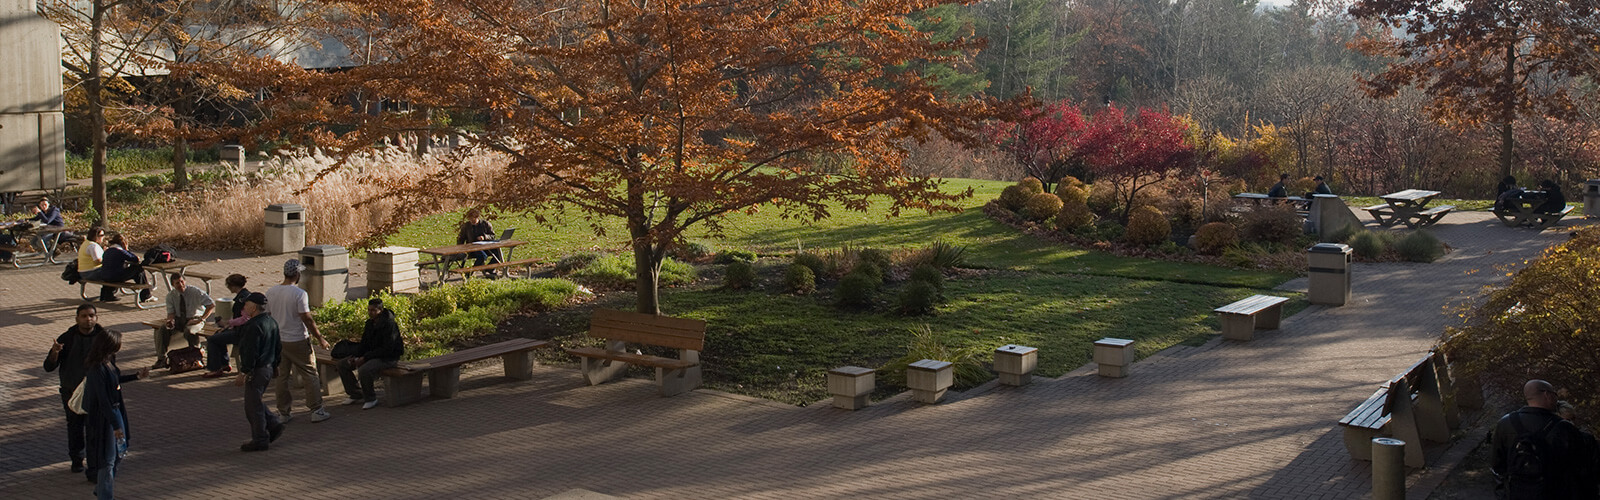 A cobblestone area with people sitting at picnic tables and park benches. Lush fall trees and bushes surround the area.